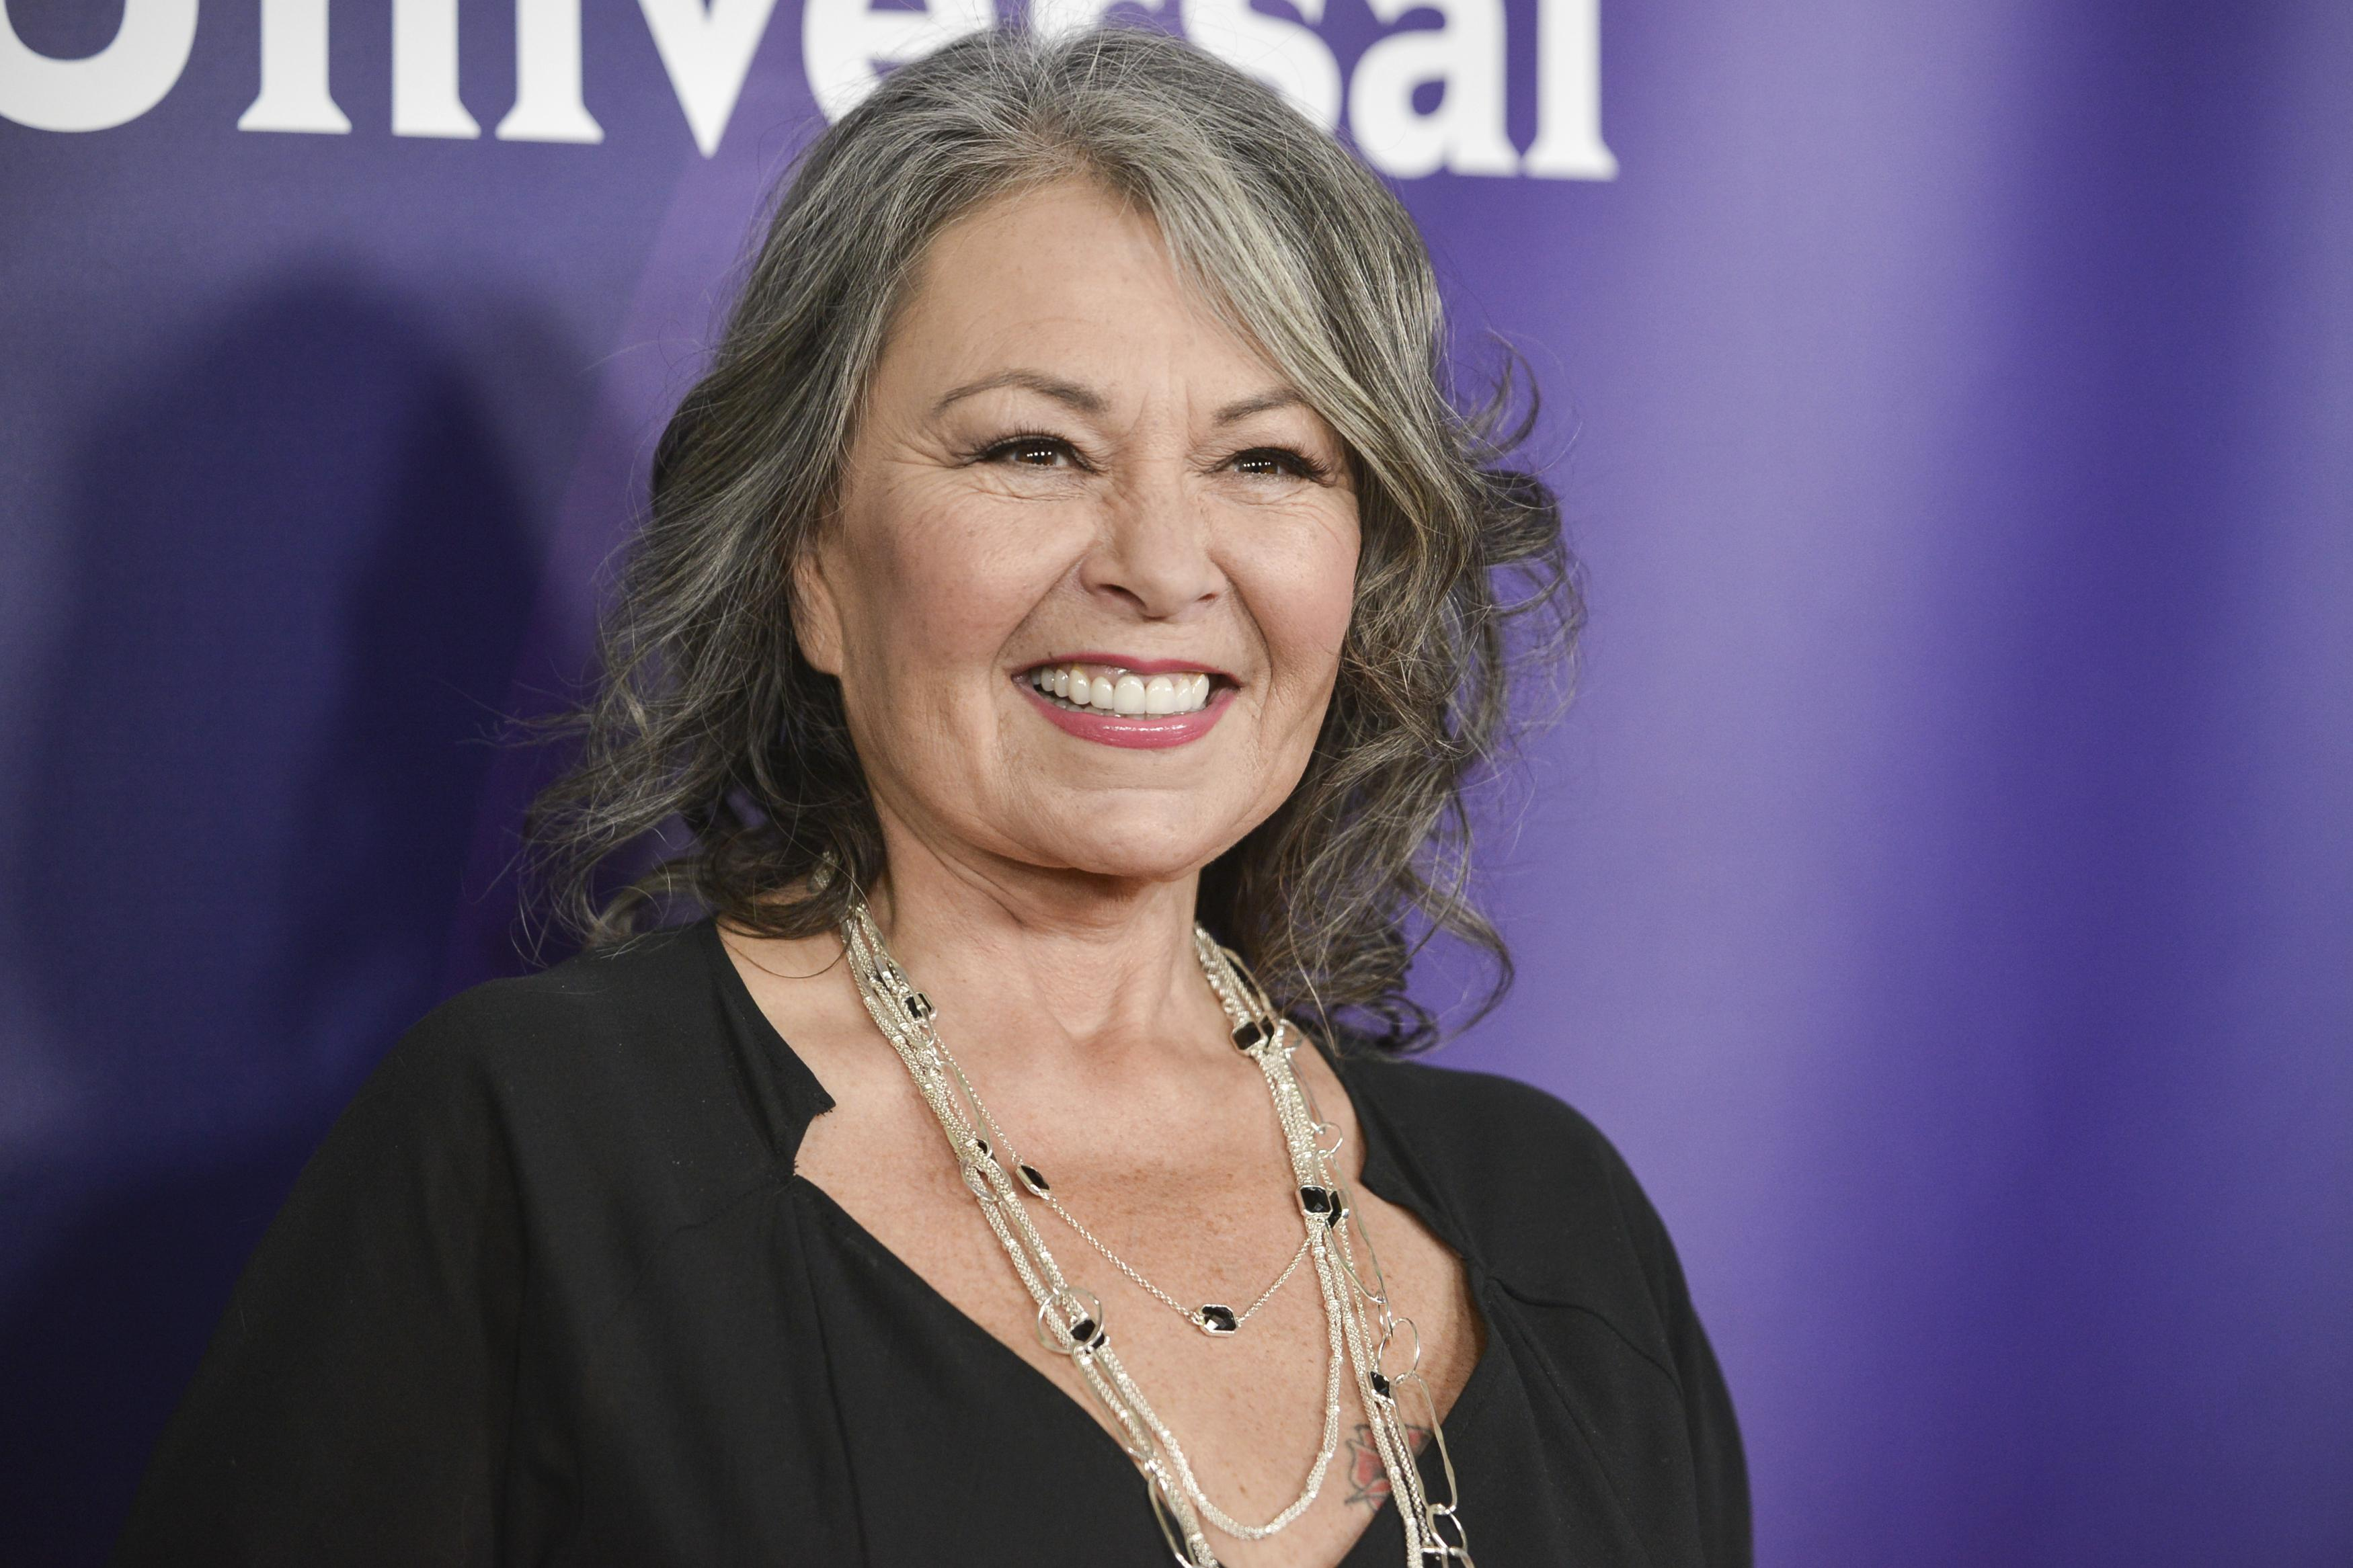 Roseanne Barr blames support for Trump on sitcom's cancelation, says she's in touch with president